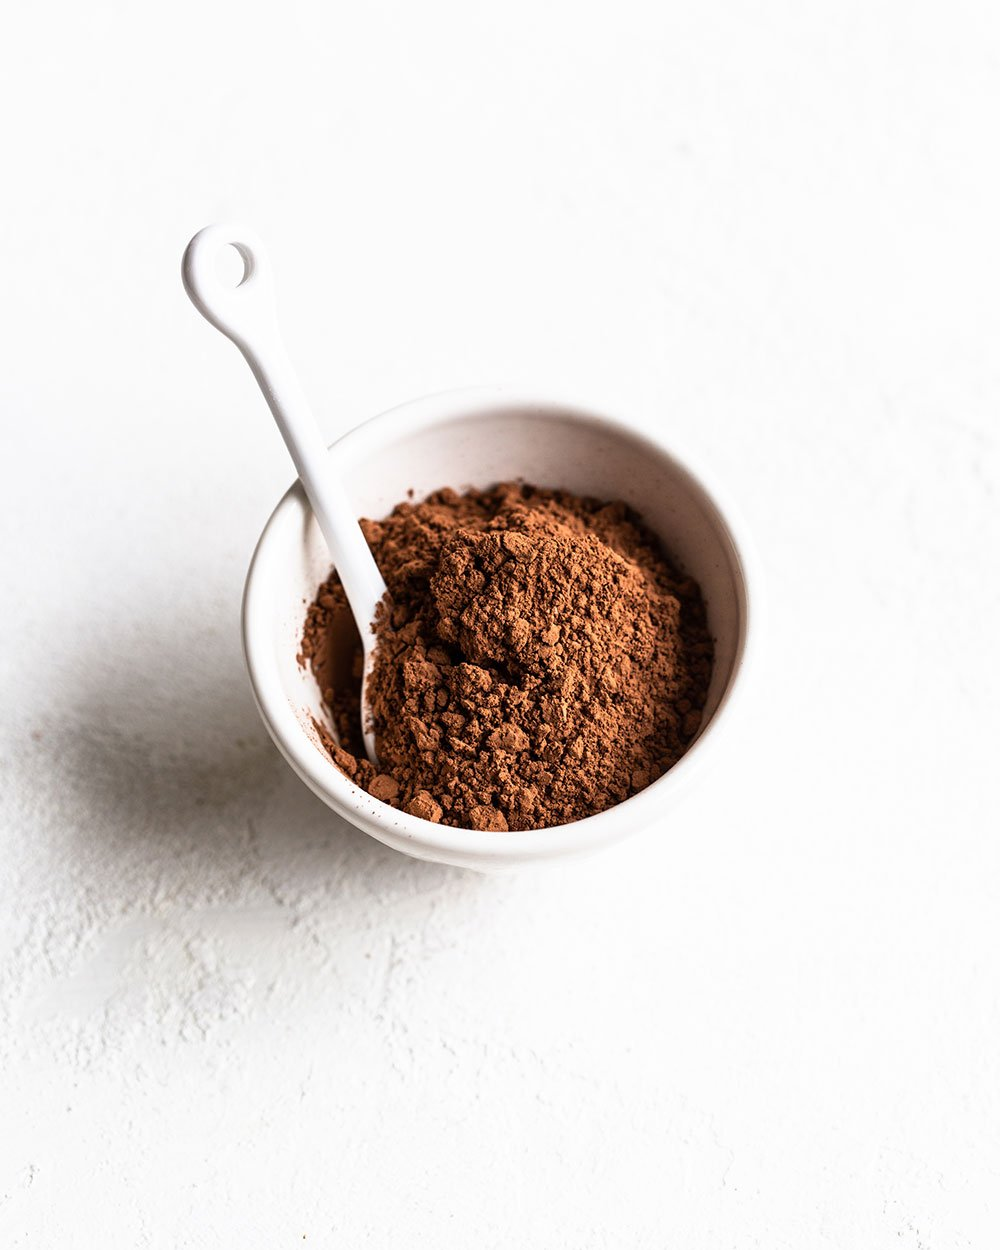 High fat Dutch process cocoa powder in a bowl